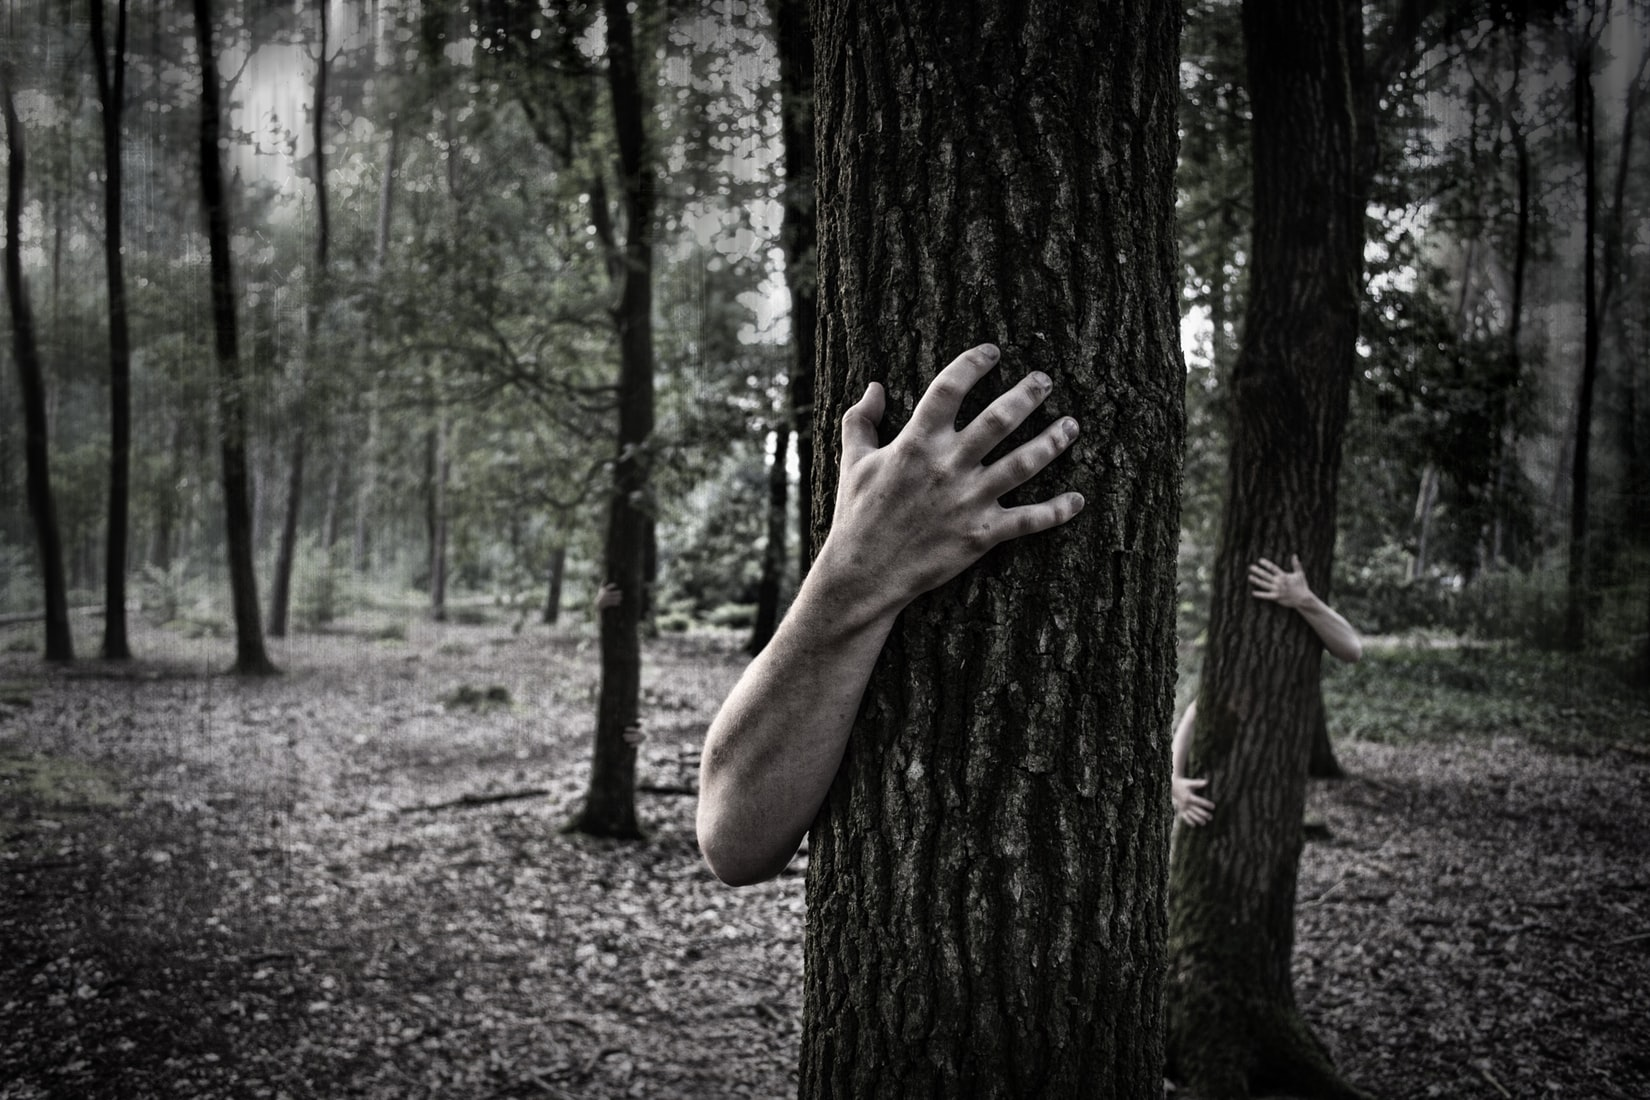 Two persons hugging trees in a dark forest